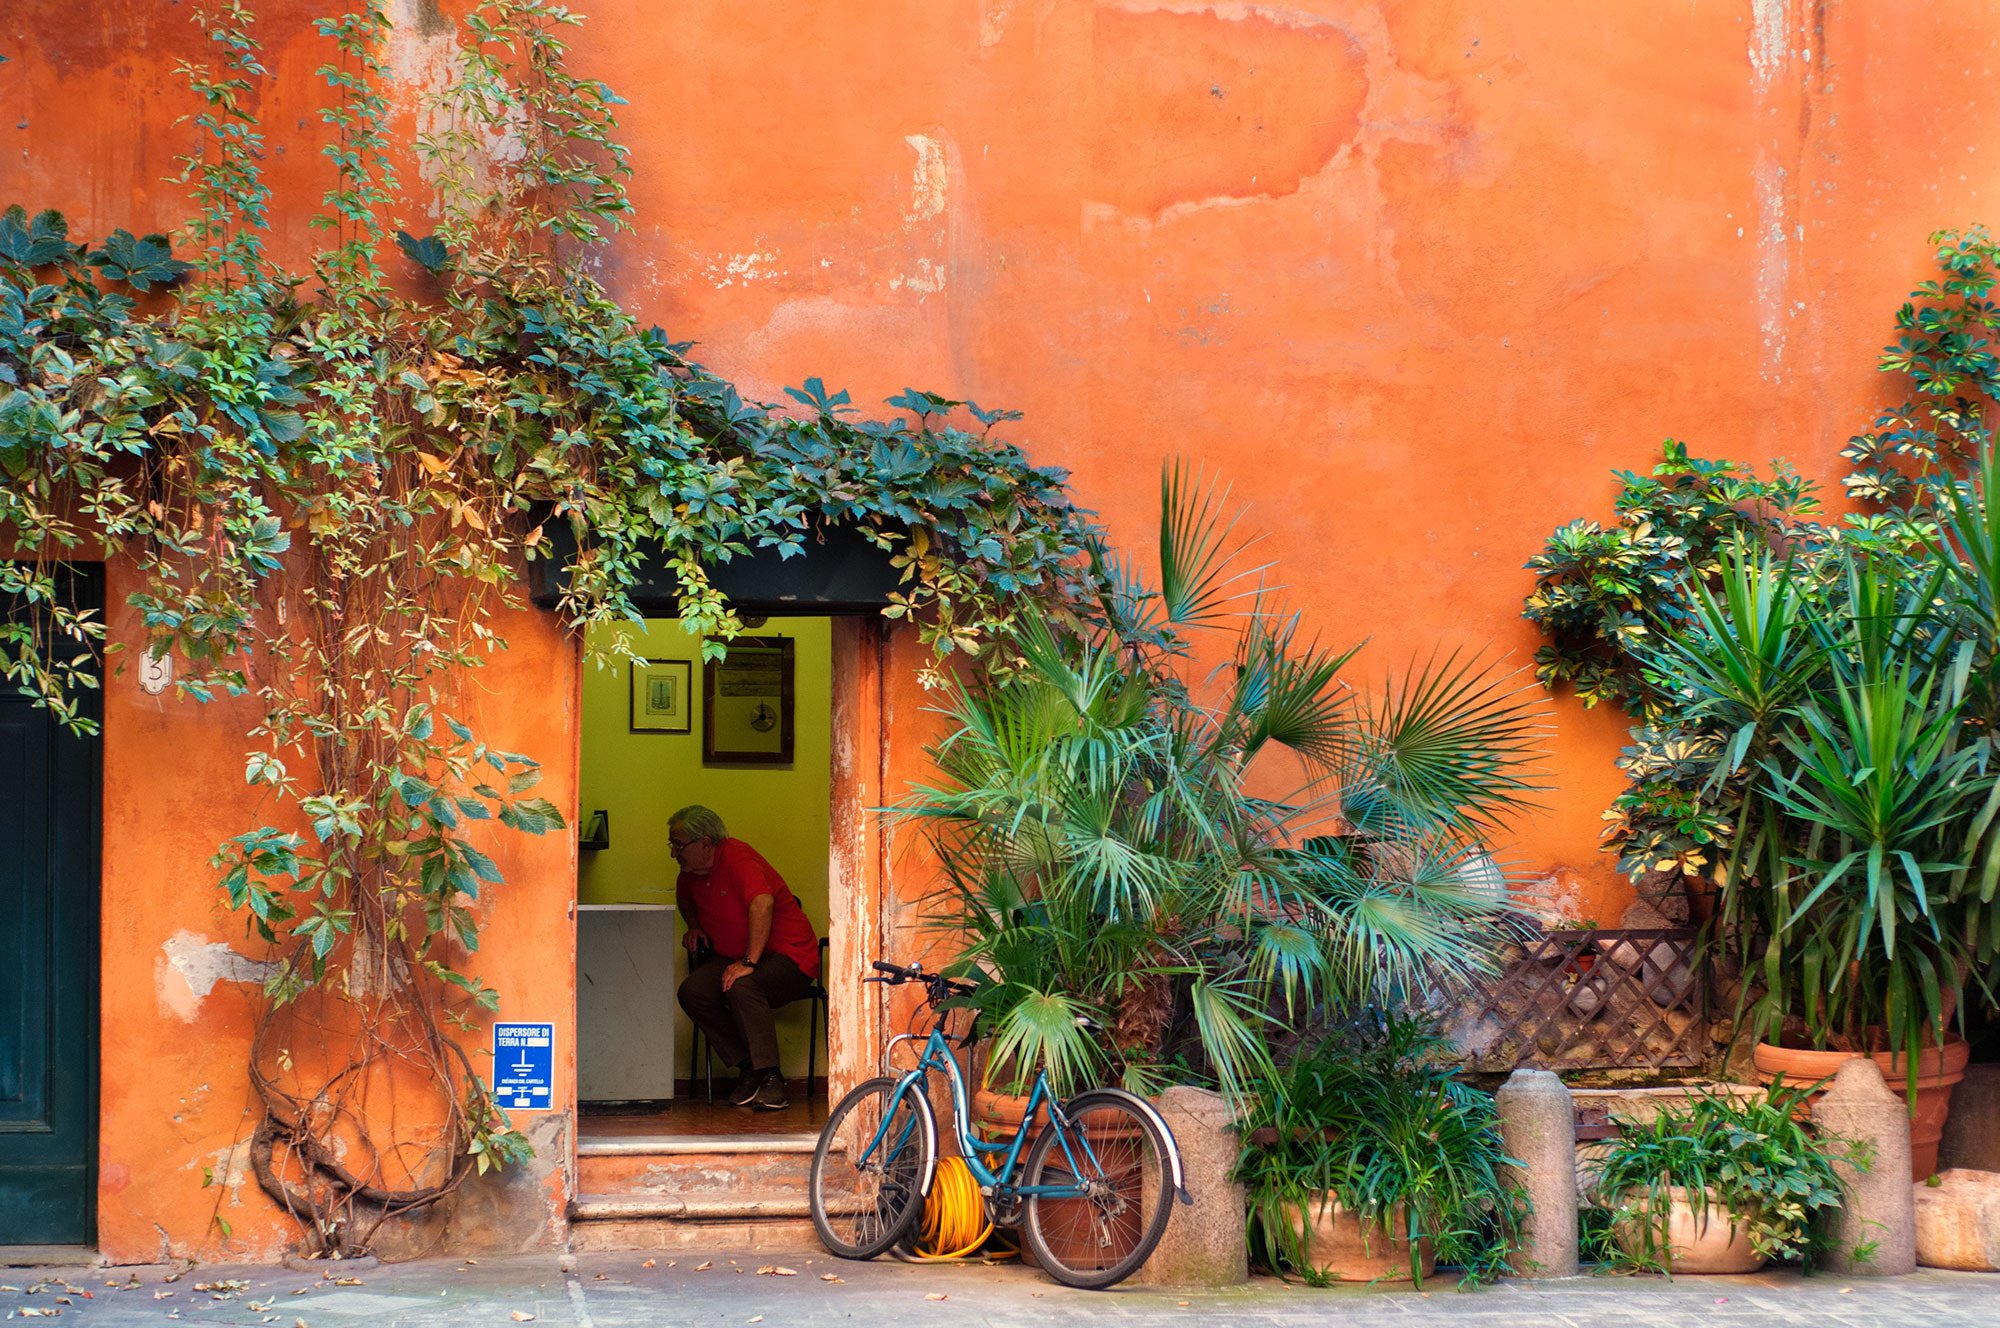 Photograph Wall and plant by Marcello Ceraulo on 500px